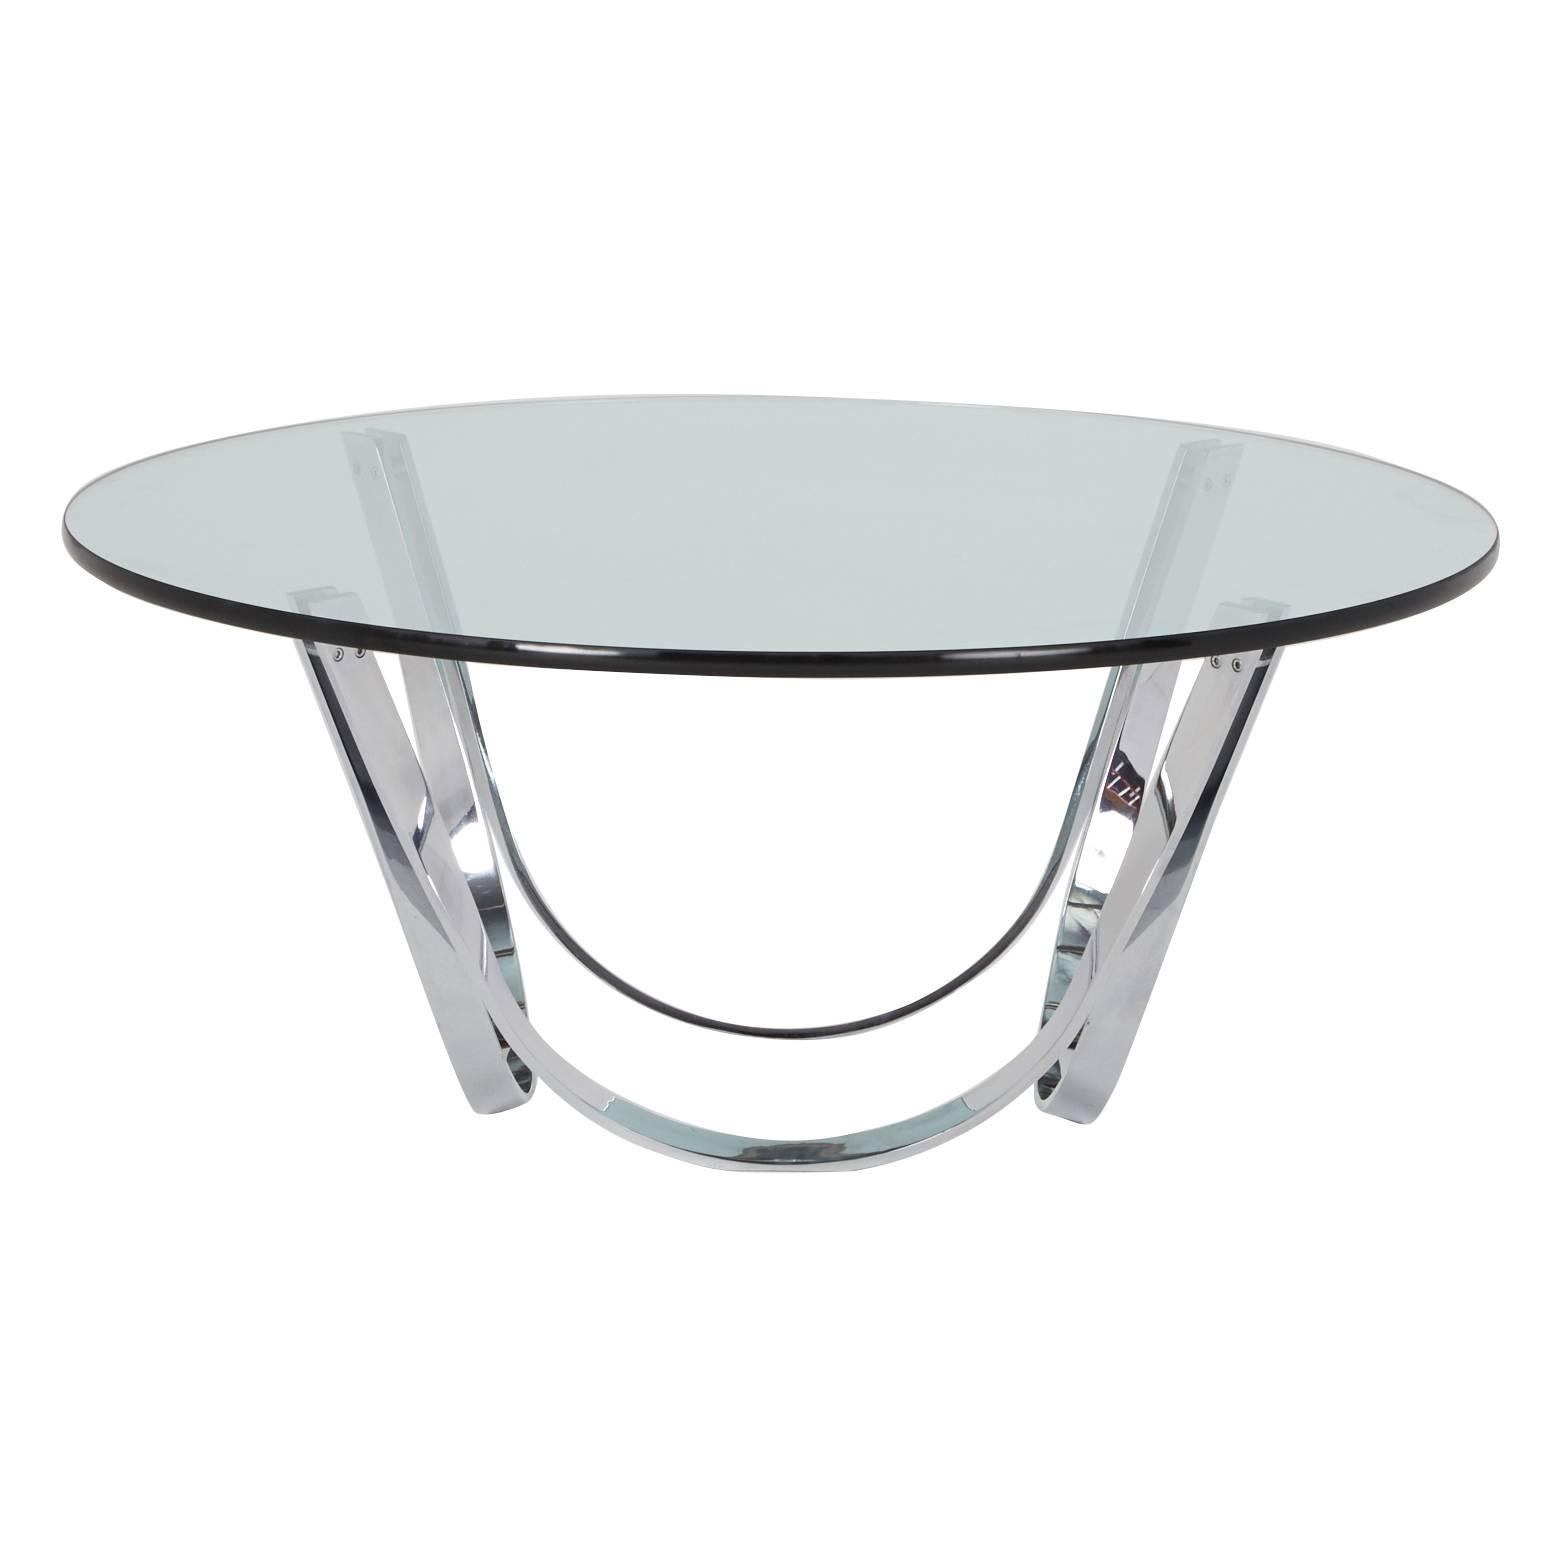 Roger Sprunger Style Coffee Table by Tri-Mark